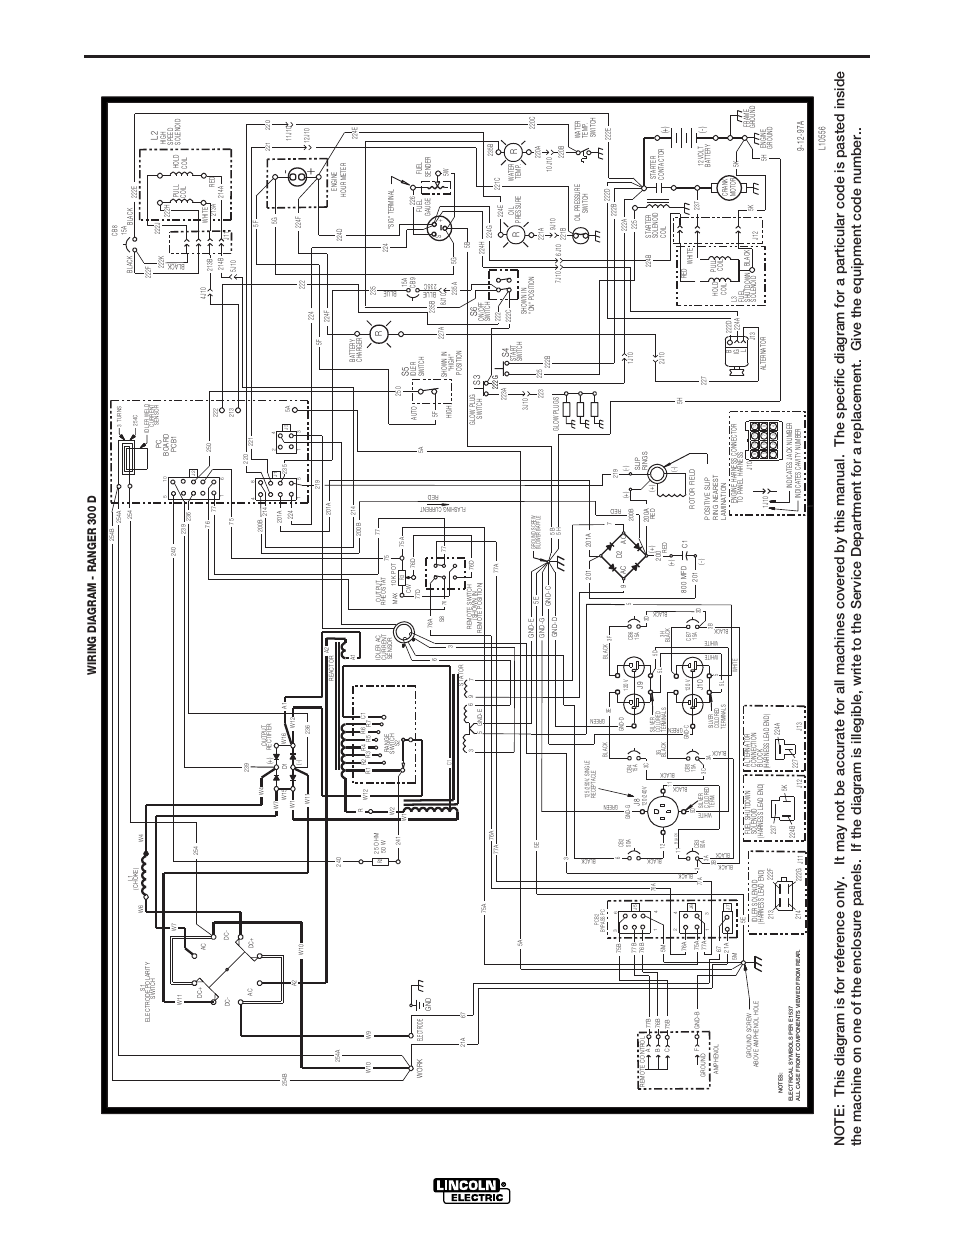 Lincoln Ranger Wiring Diagram Schematics 1997 Town Car 300 D Electric 1965 Diagrams Automotive